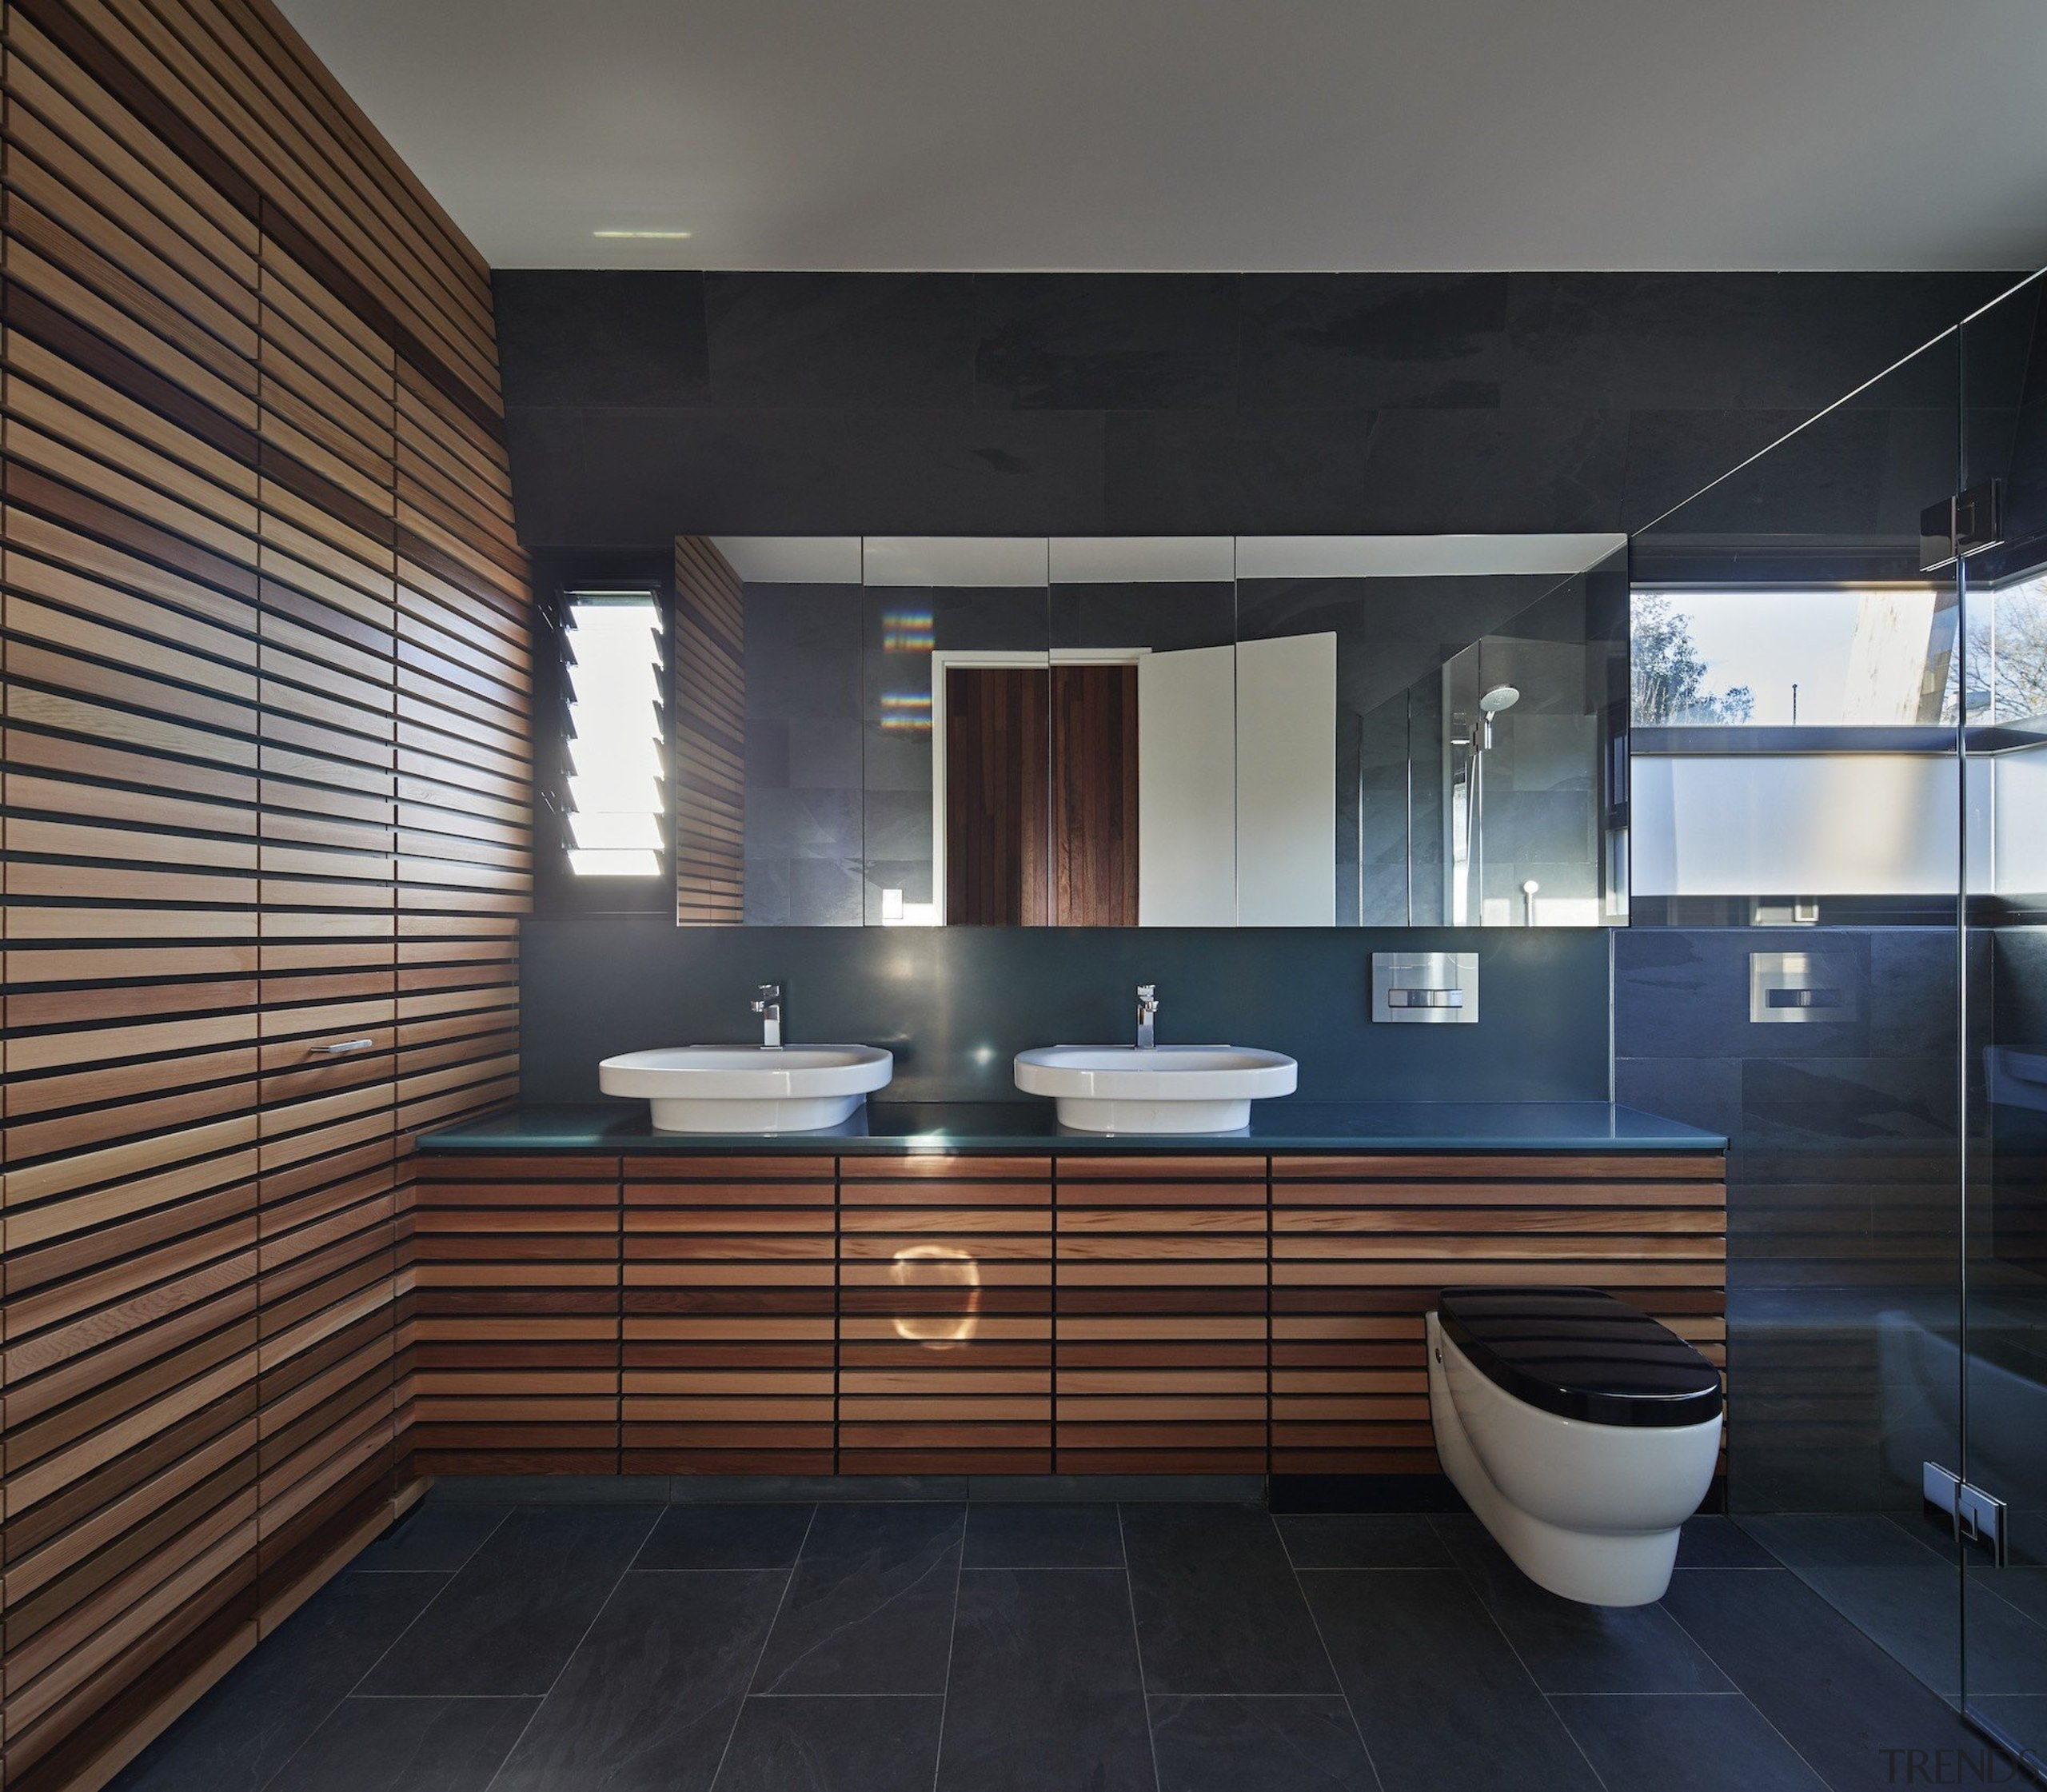 See from Grant Amon Architects architecture, bathroom, daylighting, floor, interior design, room, black, gray